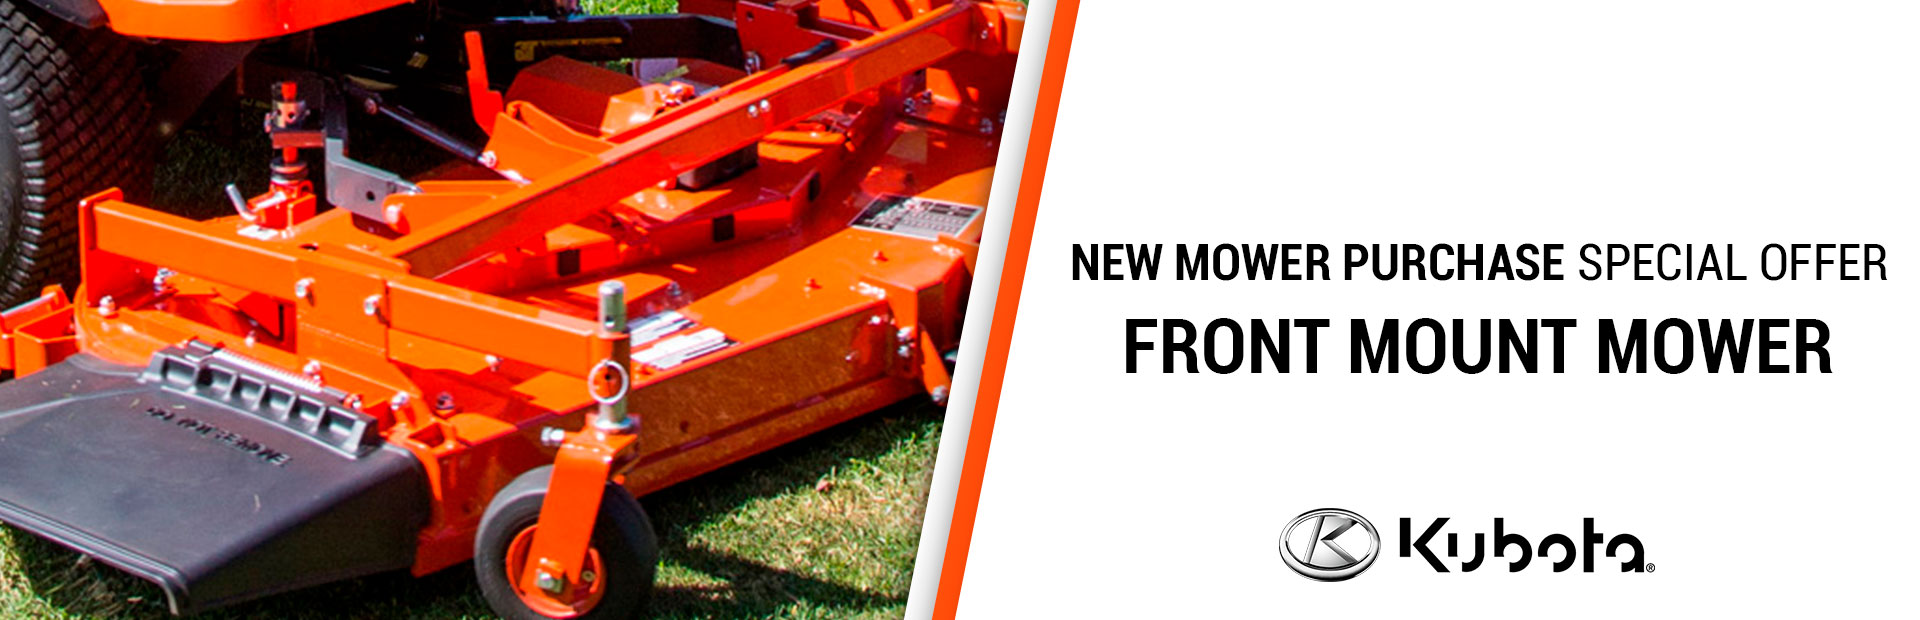 Kubota: NEW MOWER PURCHASE SPECIAL OFFER-FRONT MOUNT MOWER